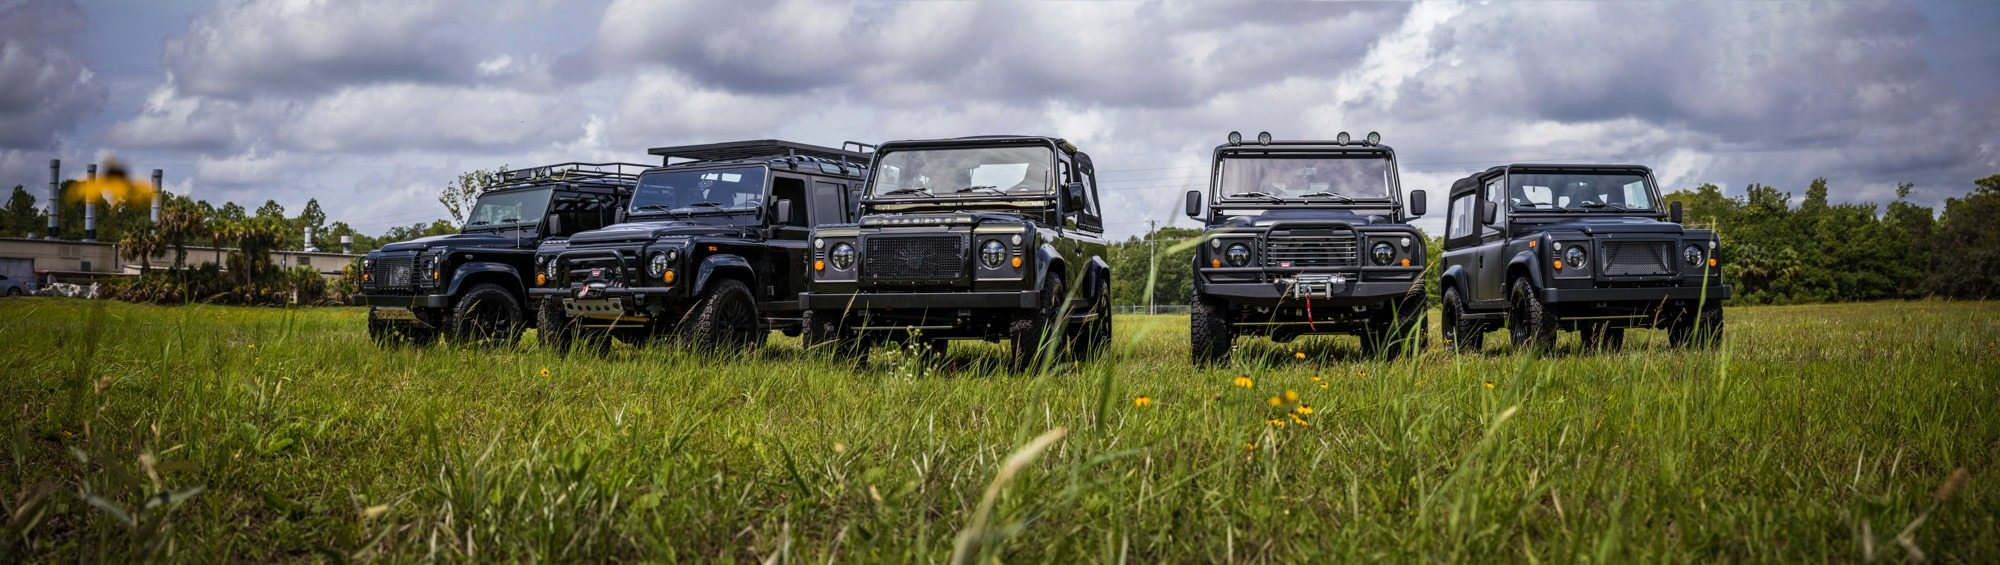 Custom Defender 110 and 90